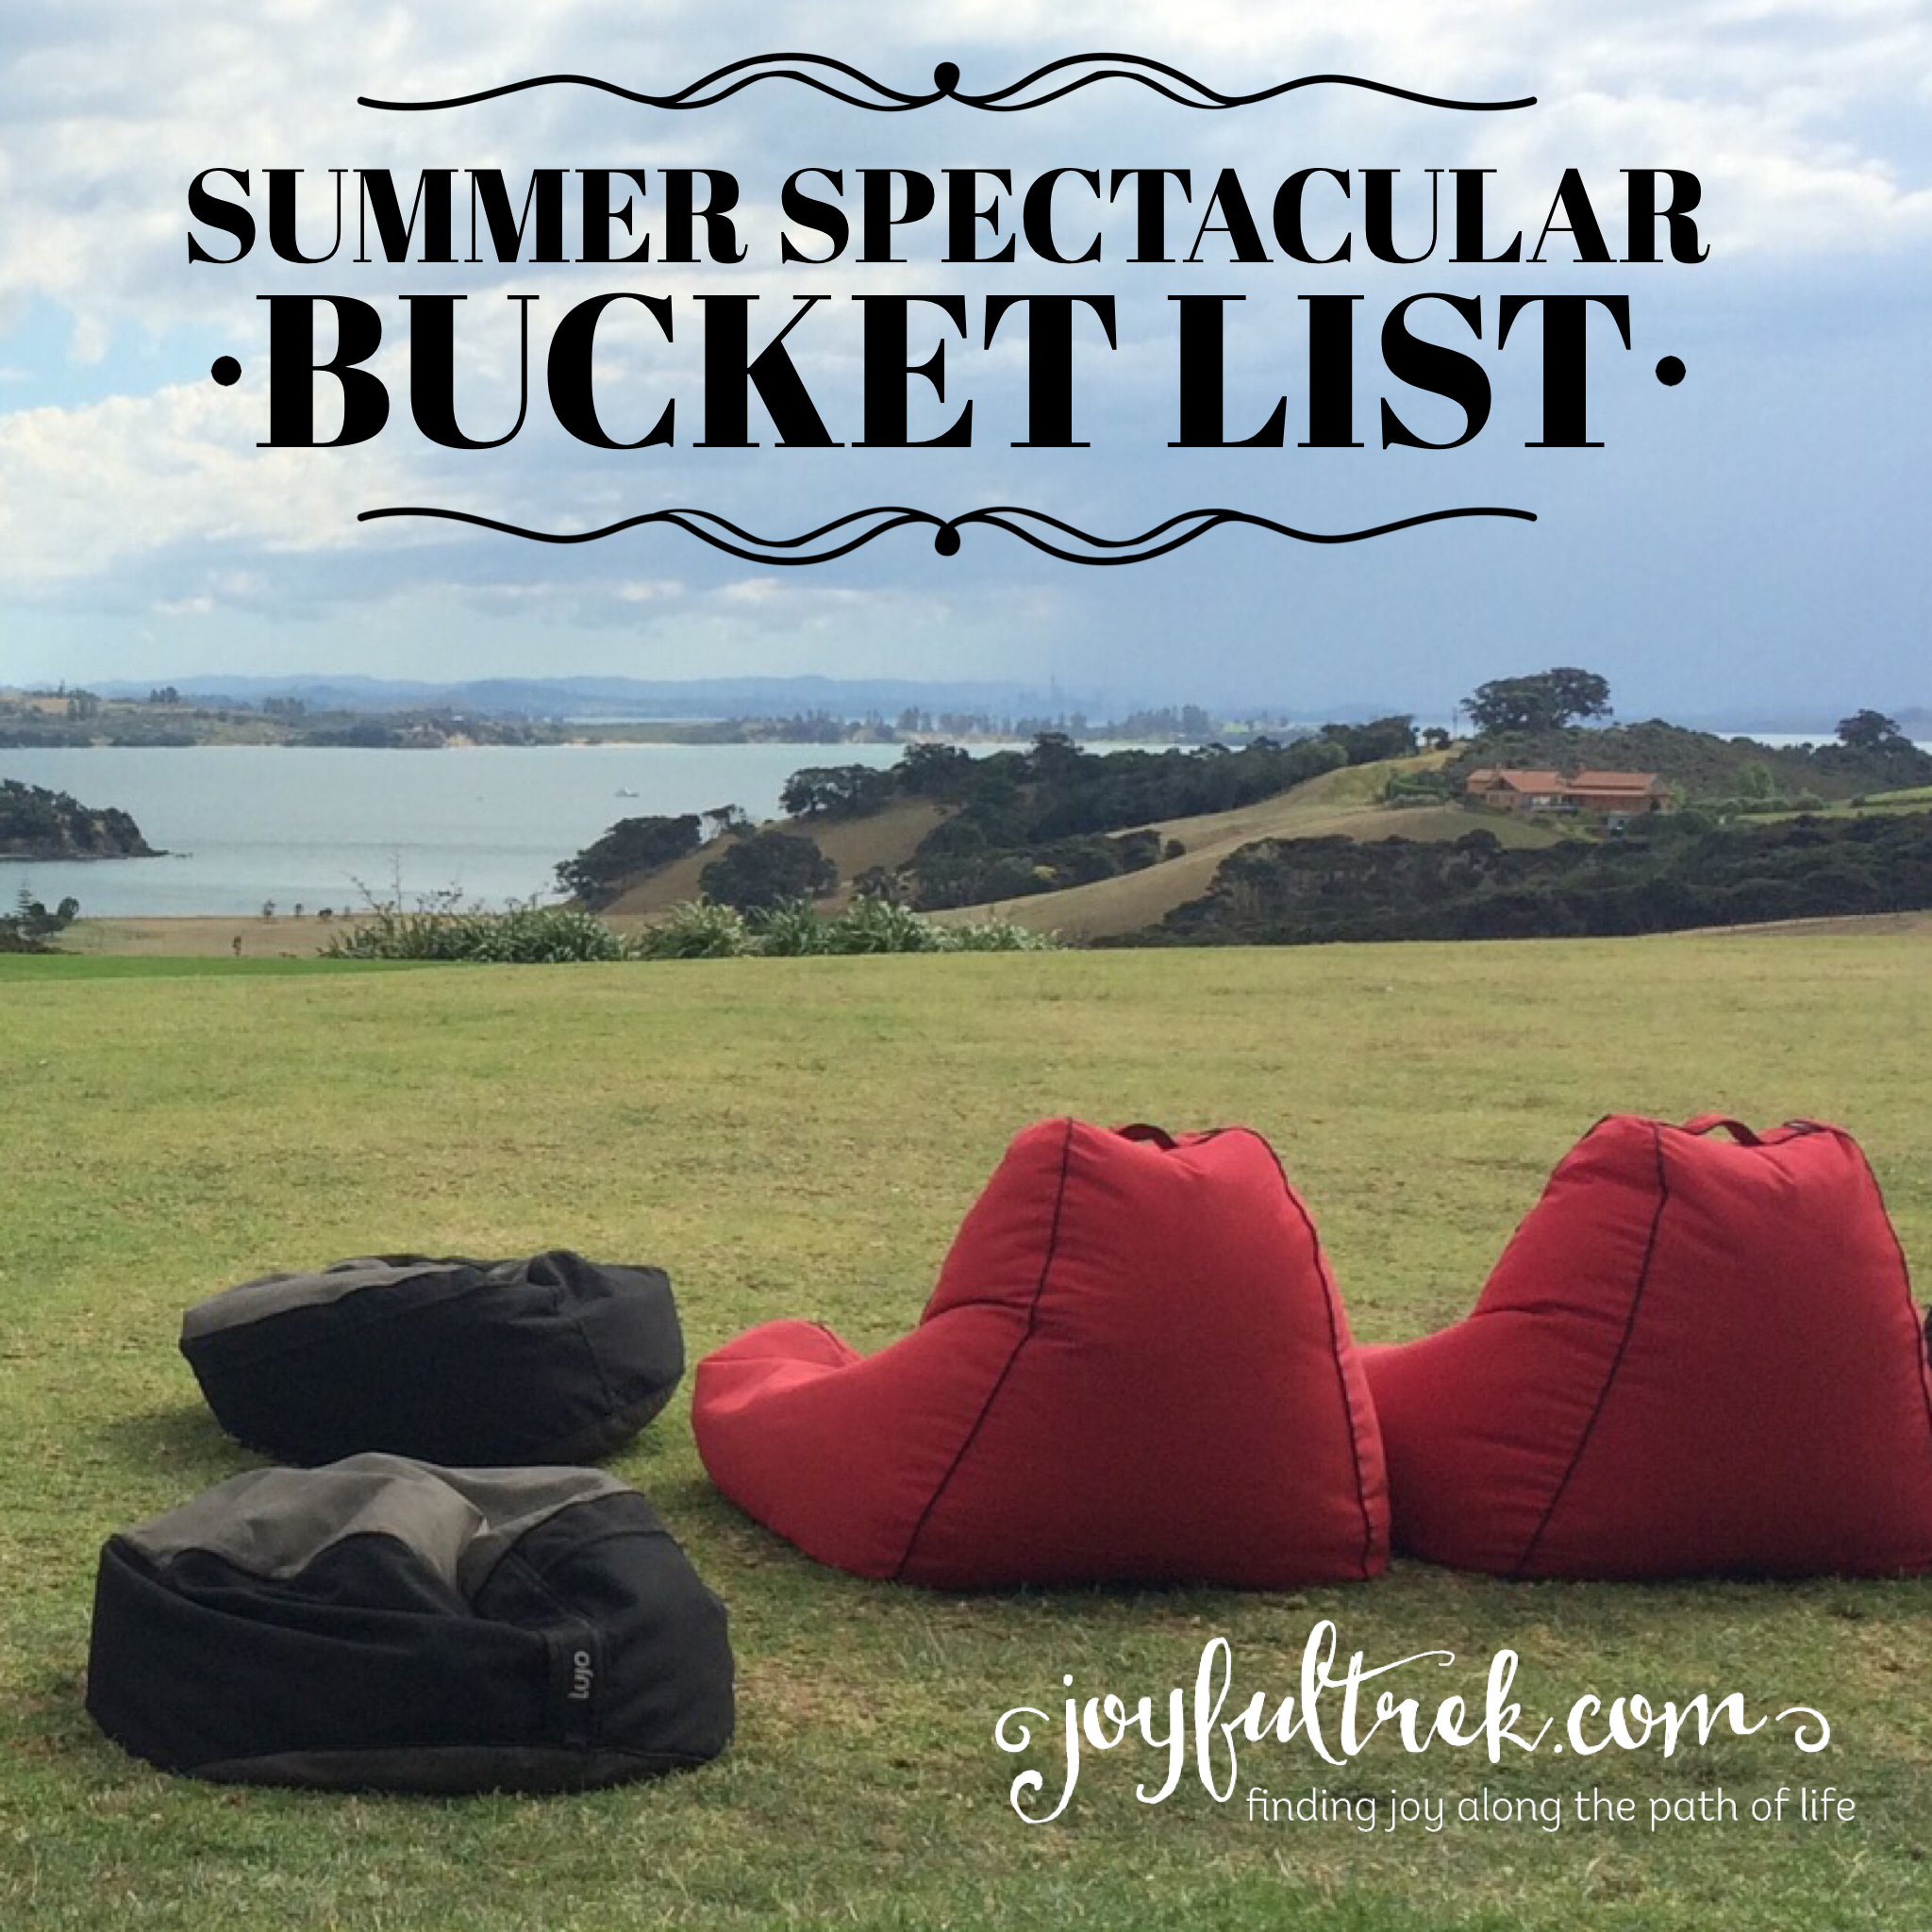 Summer Spectacular Bucket List